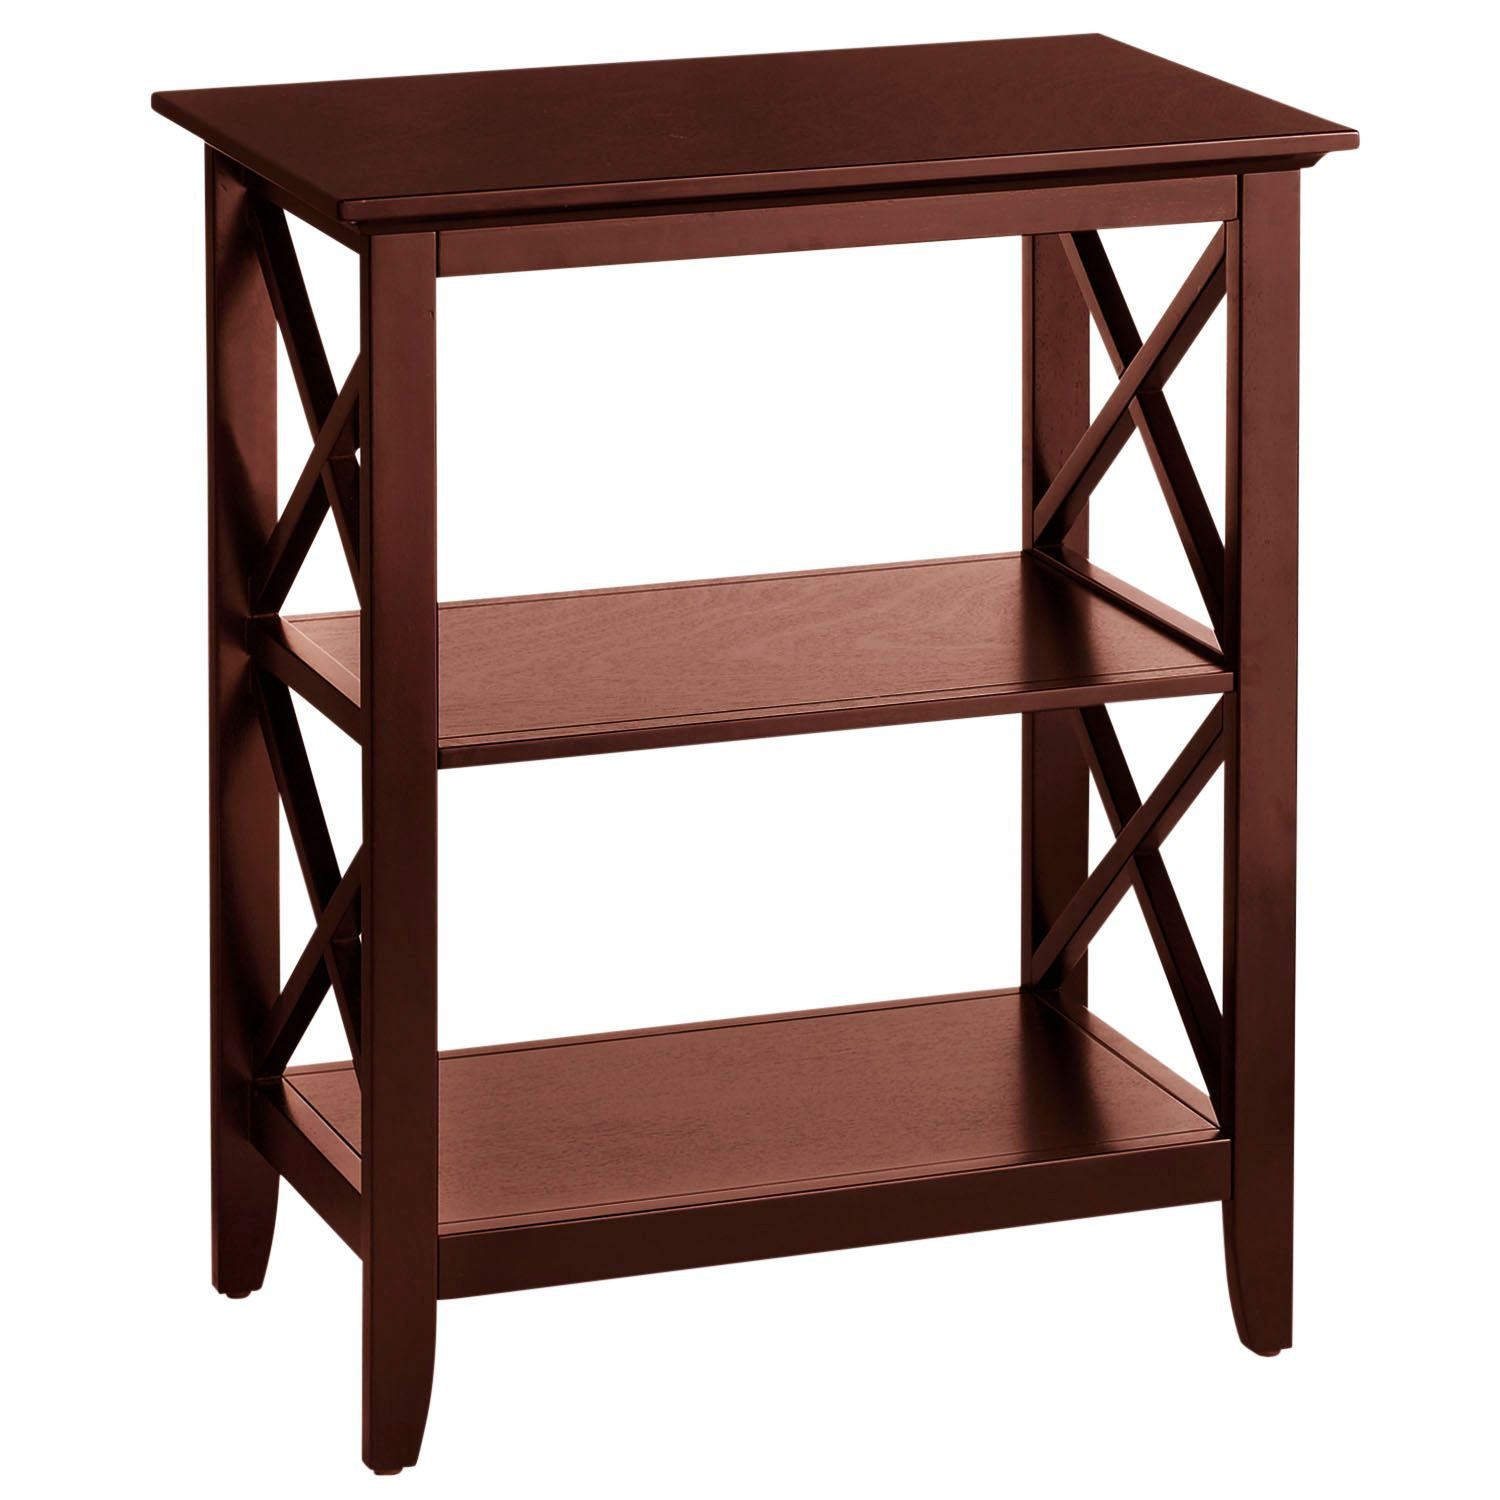 kenzie espresso brown accent table pier imports modern ceiling lights industrial end metal garden antique drop leaf side closeout furniture carpet threshold trim wooden storage